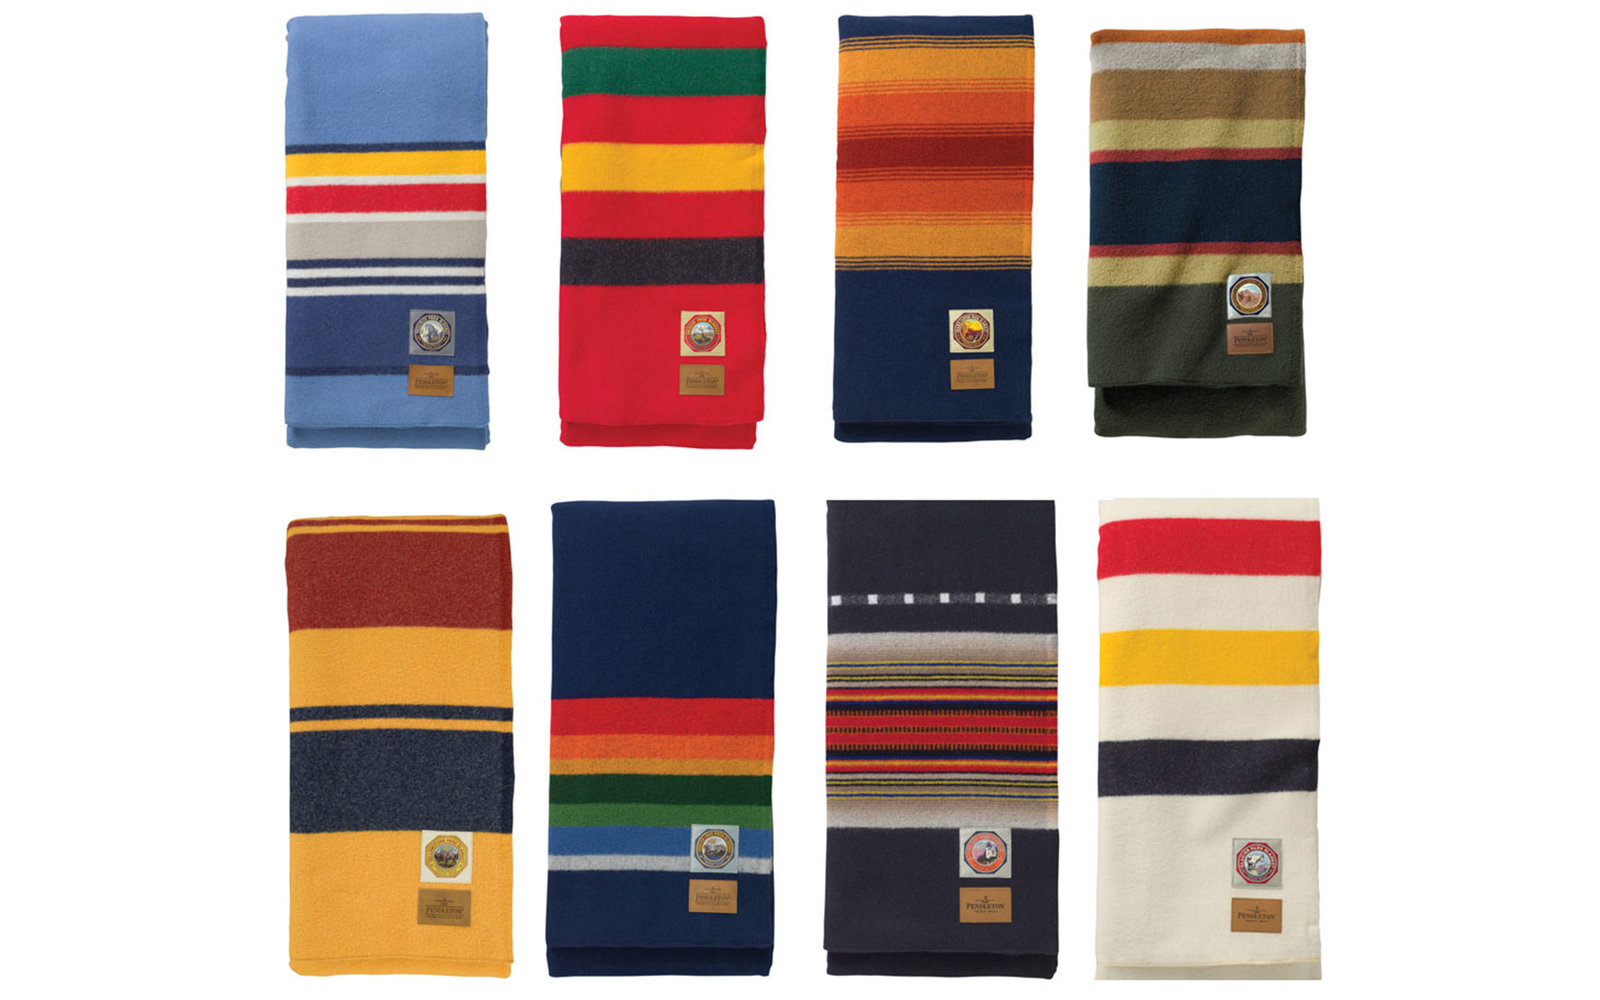 Pendleton National Parks Blankets